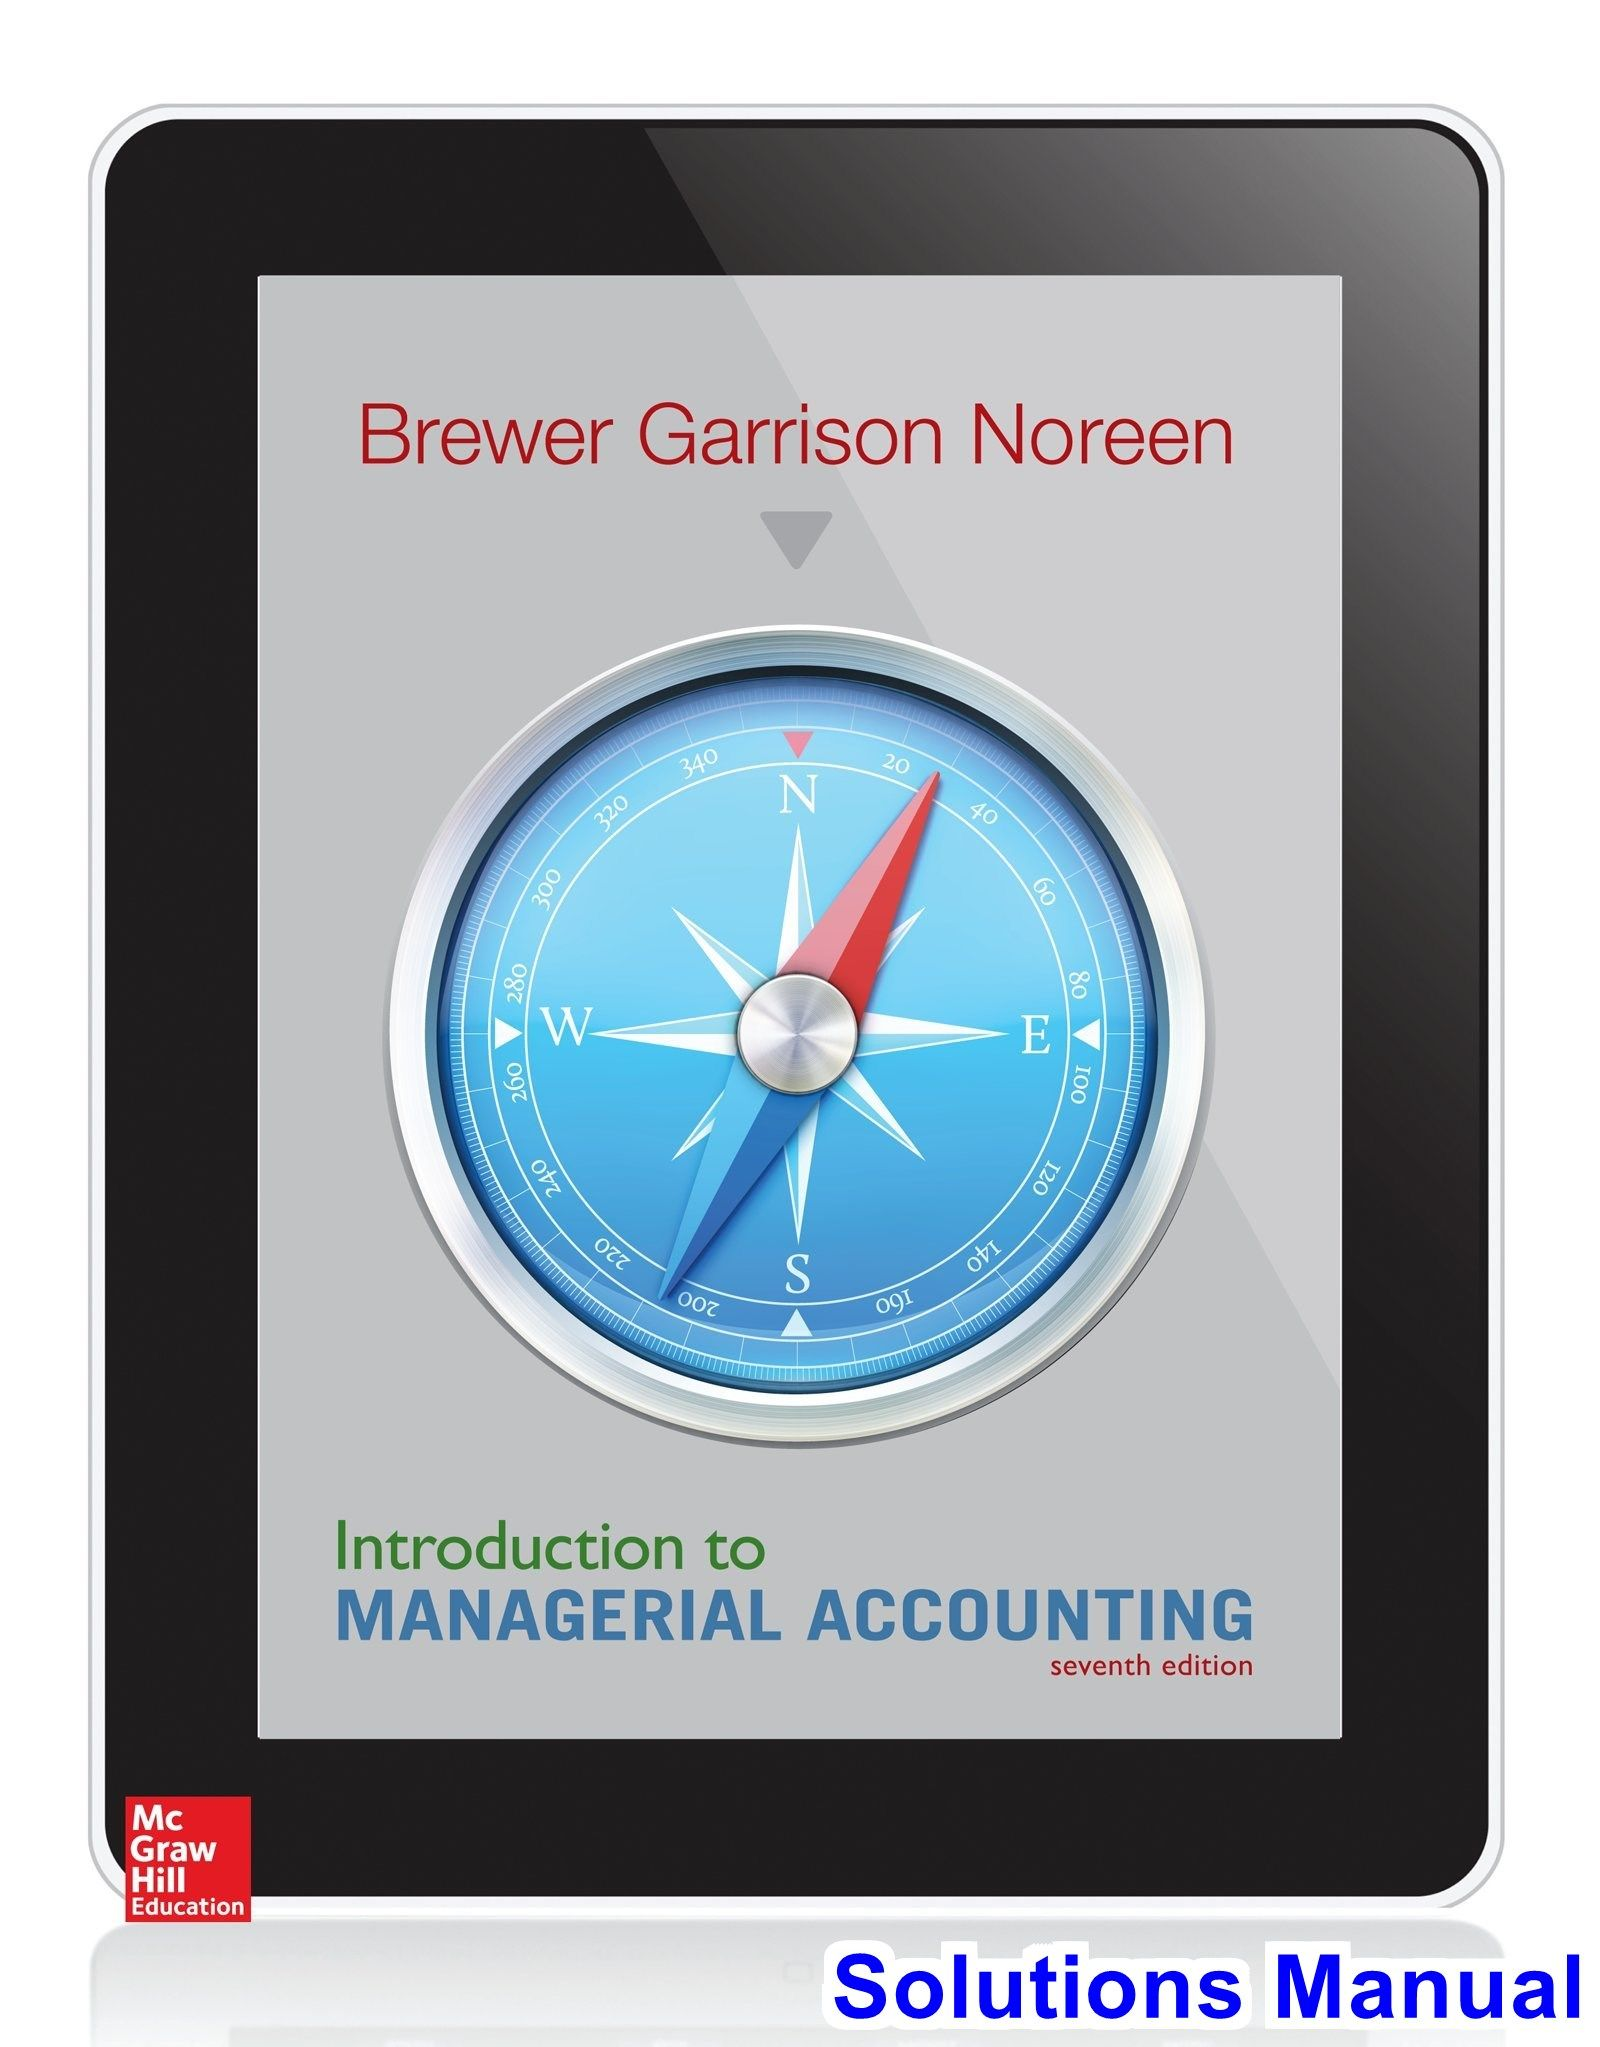 Introduction to managerial accounting 7th edition brewer solutions introduction to managerial accounting 7th edition brewer solutions manual test bank solutions manual fandeluxe Gallery